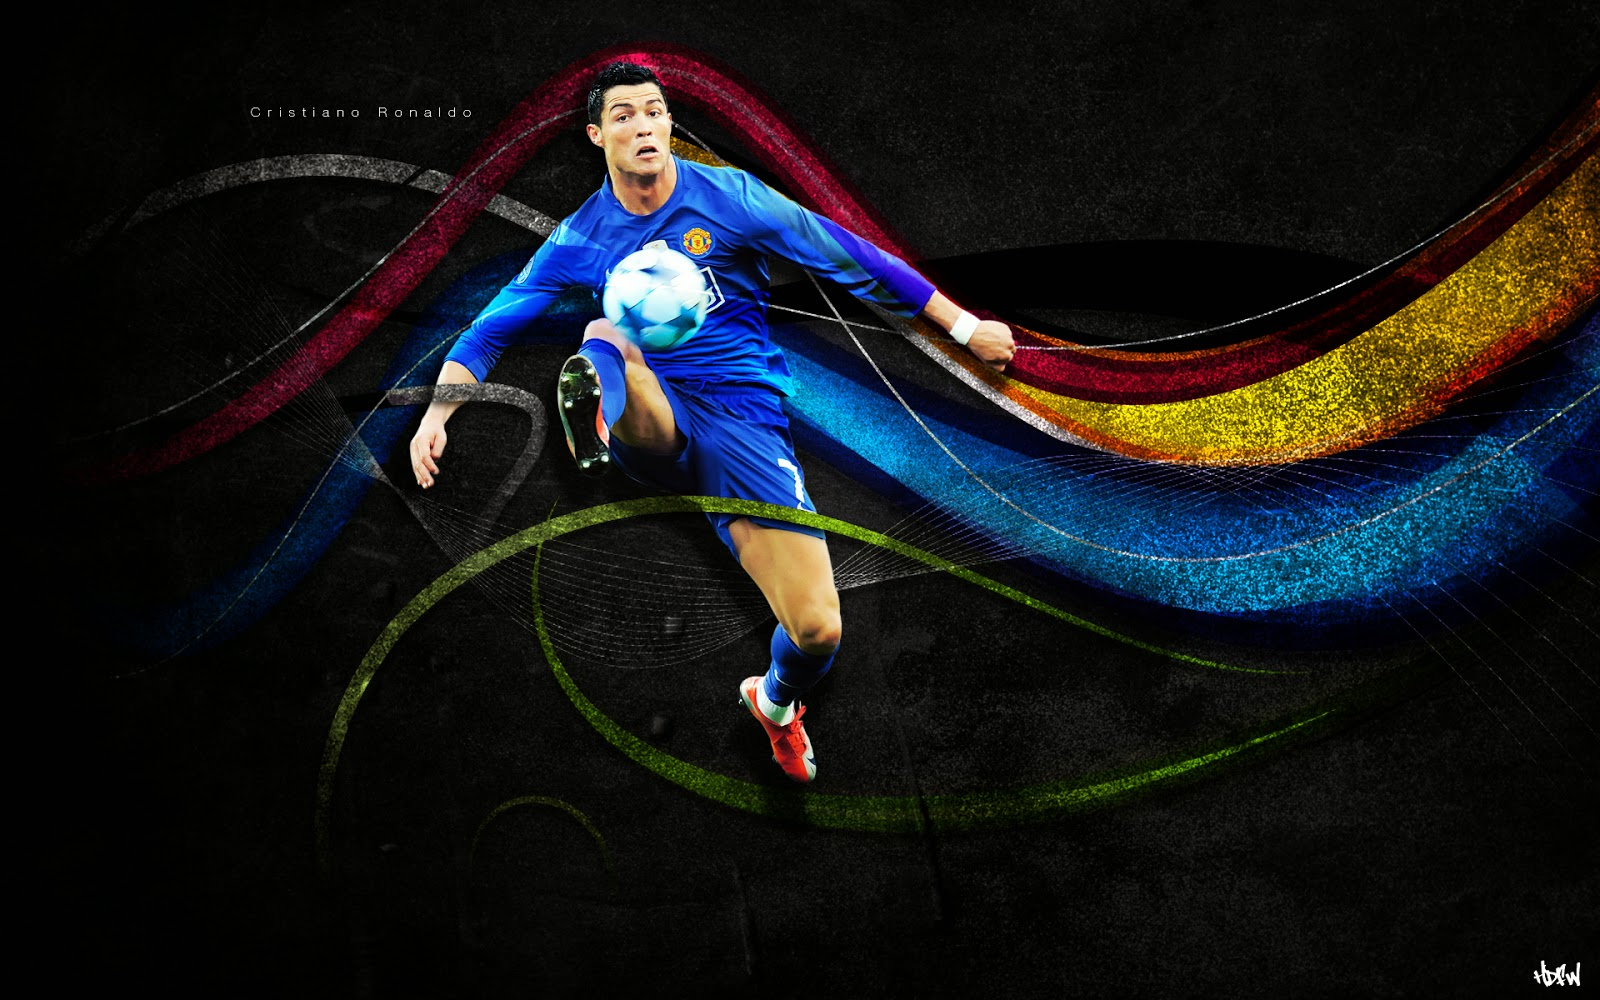 Cristiano_Ronaldo World Cup HD Wallpaper, Cover Wallpaper